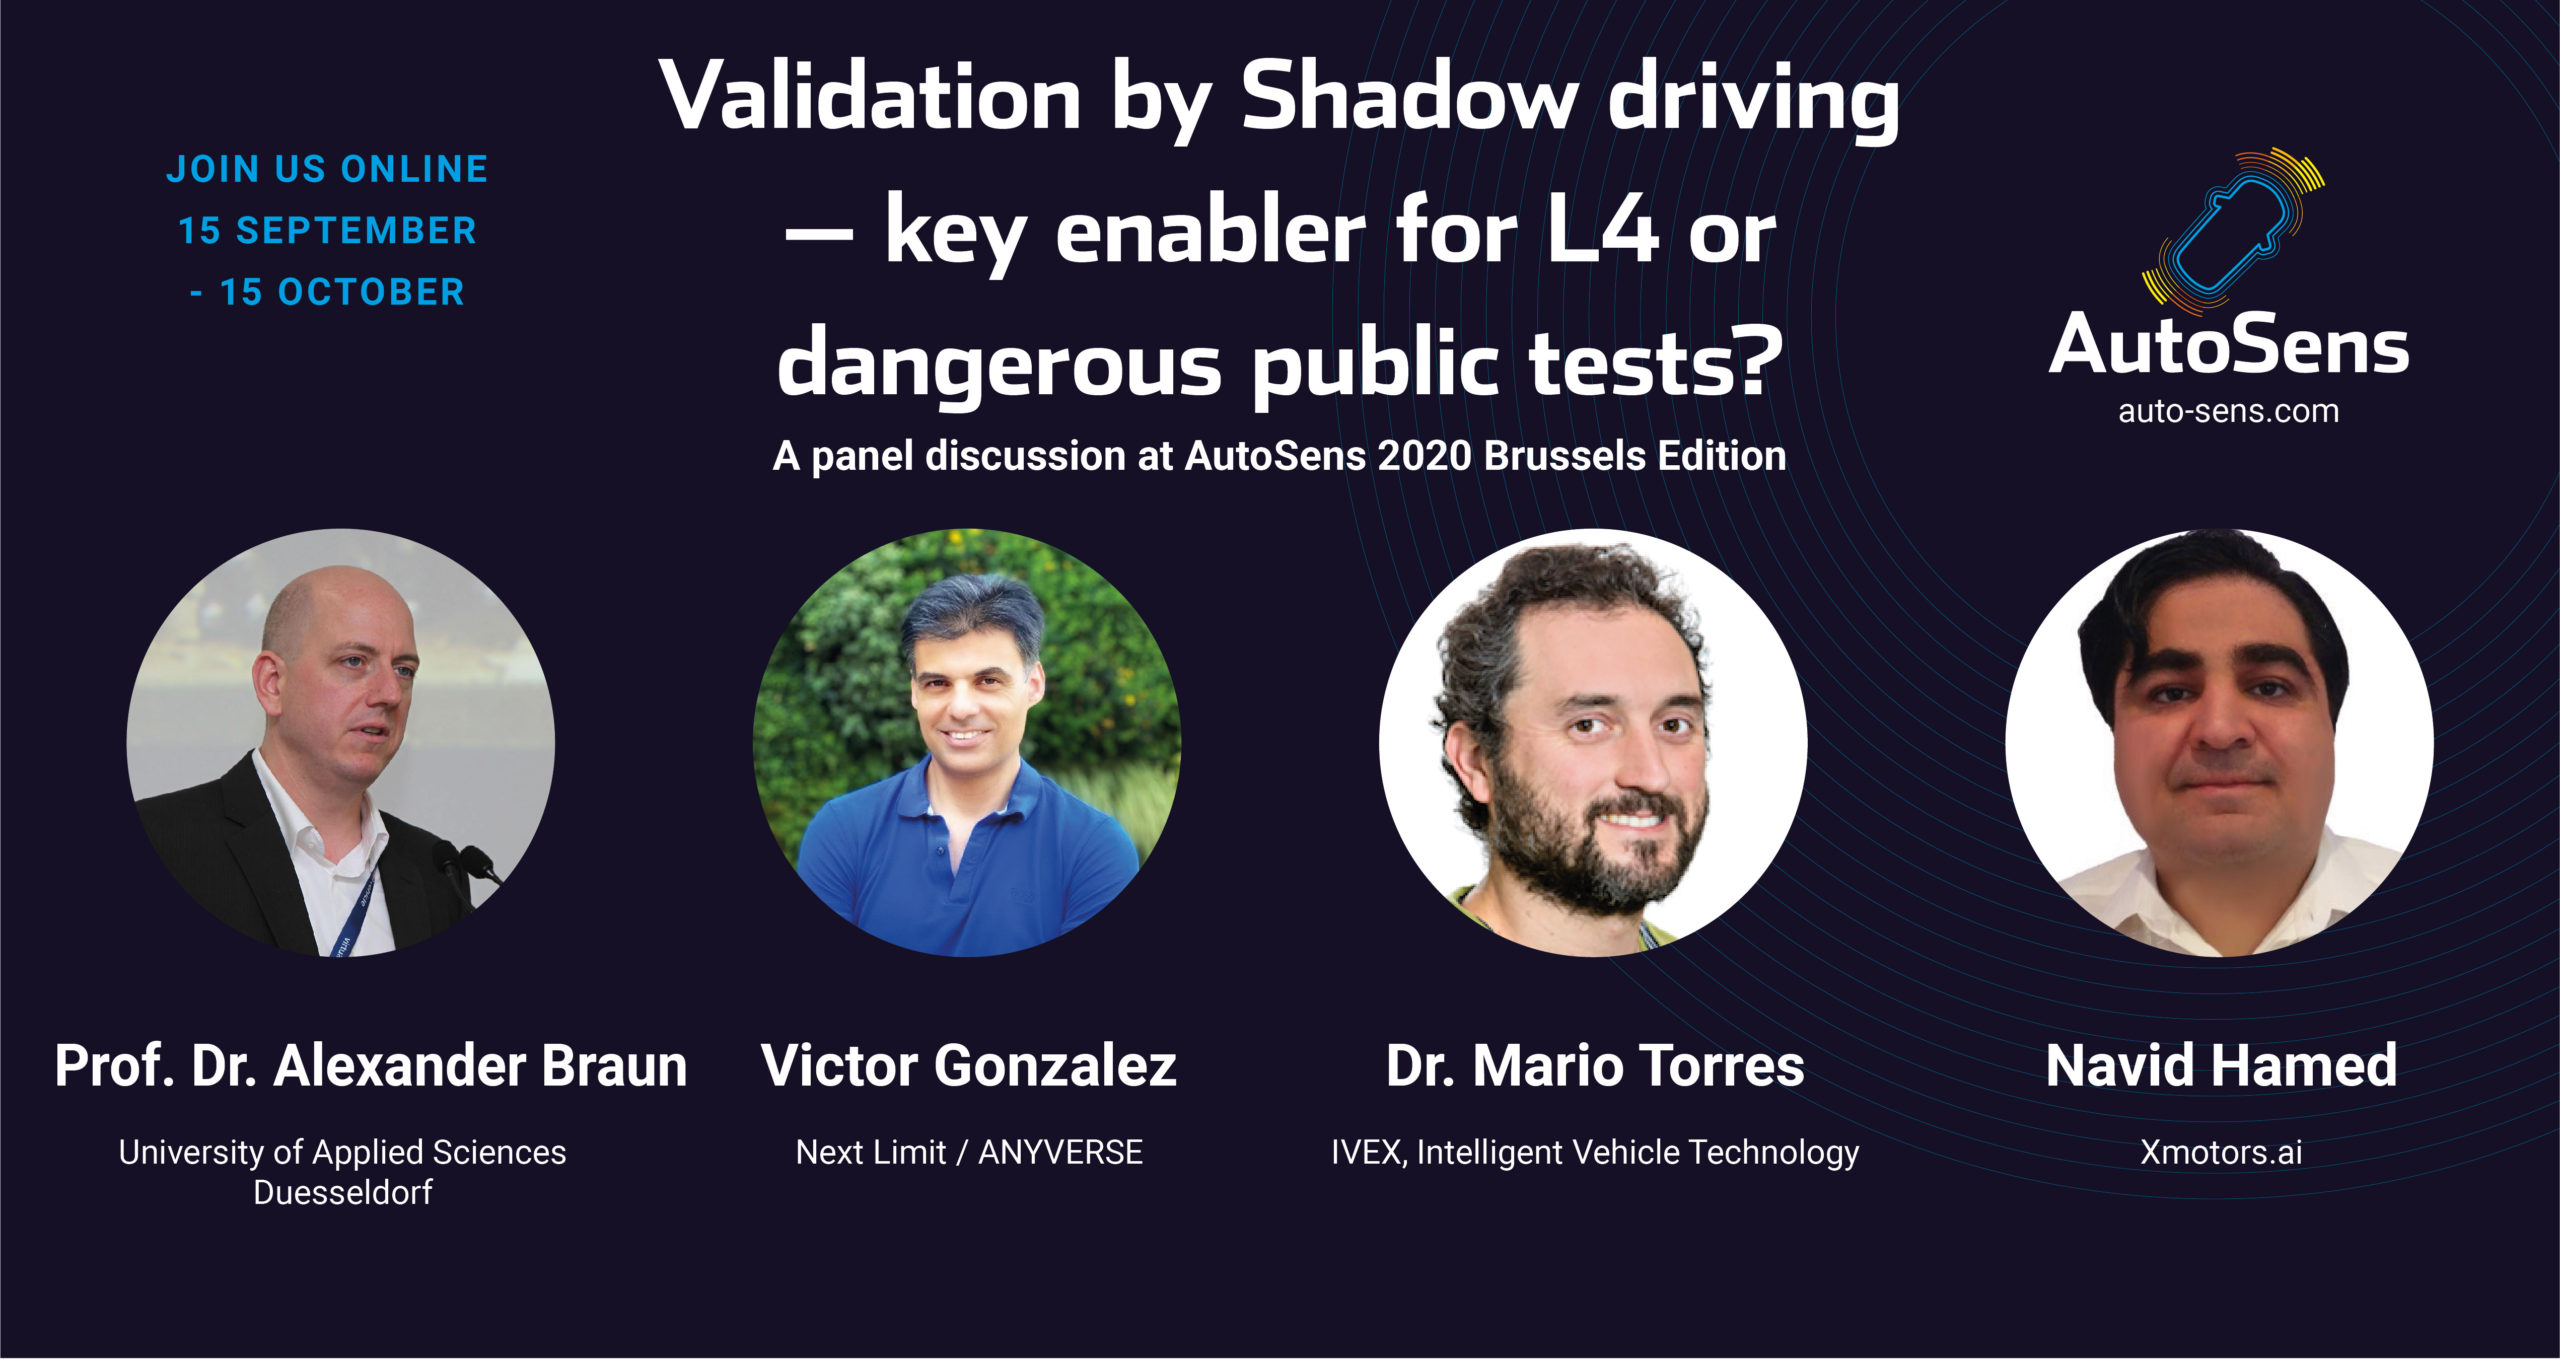 Validation by Shadow driving — key enabler for L4 or dangerous public tests?